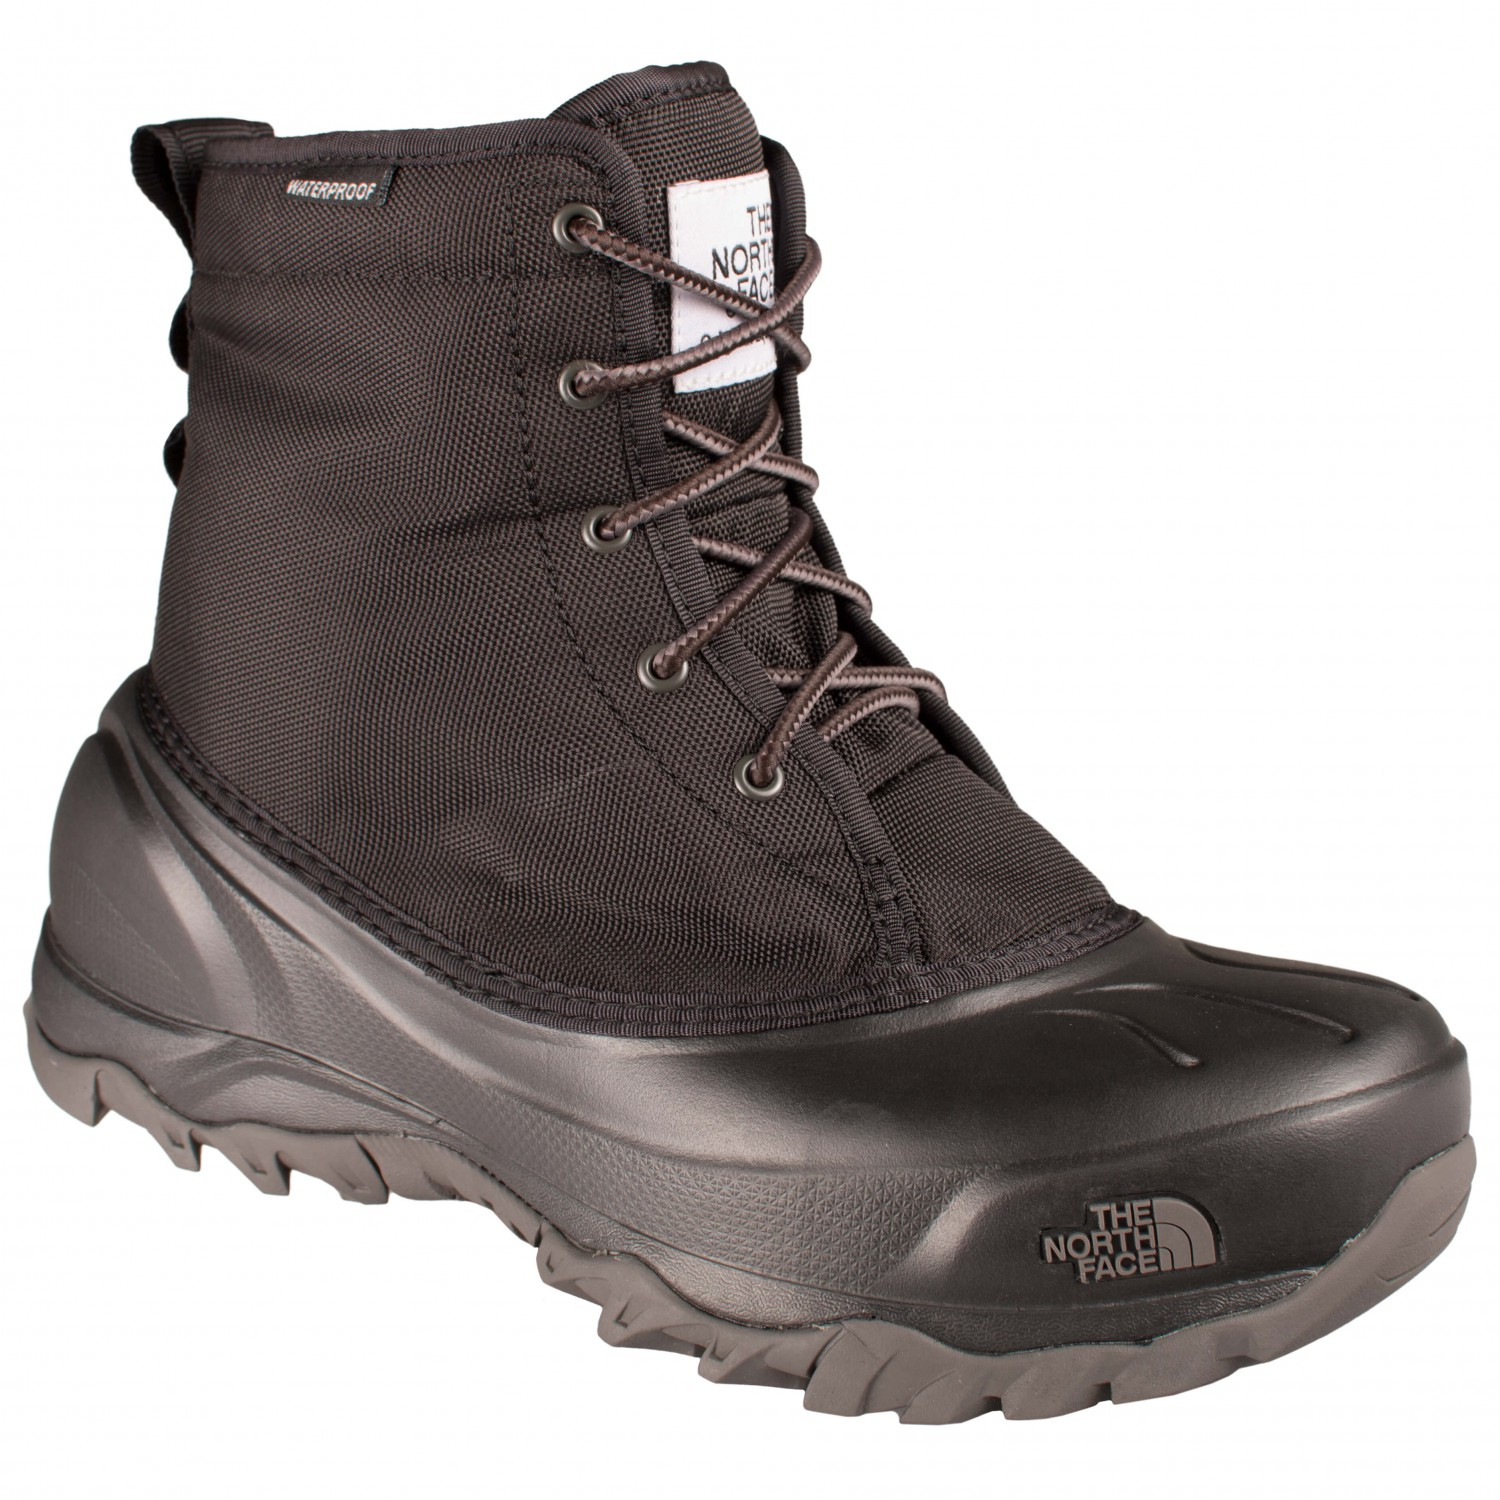 The North Face Snowshot - Winter boots Women's | Free EU